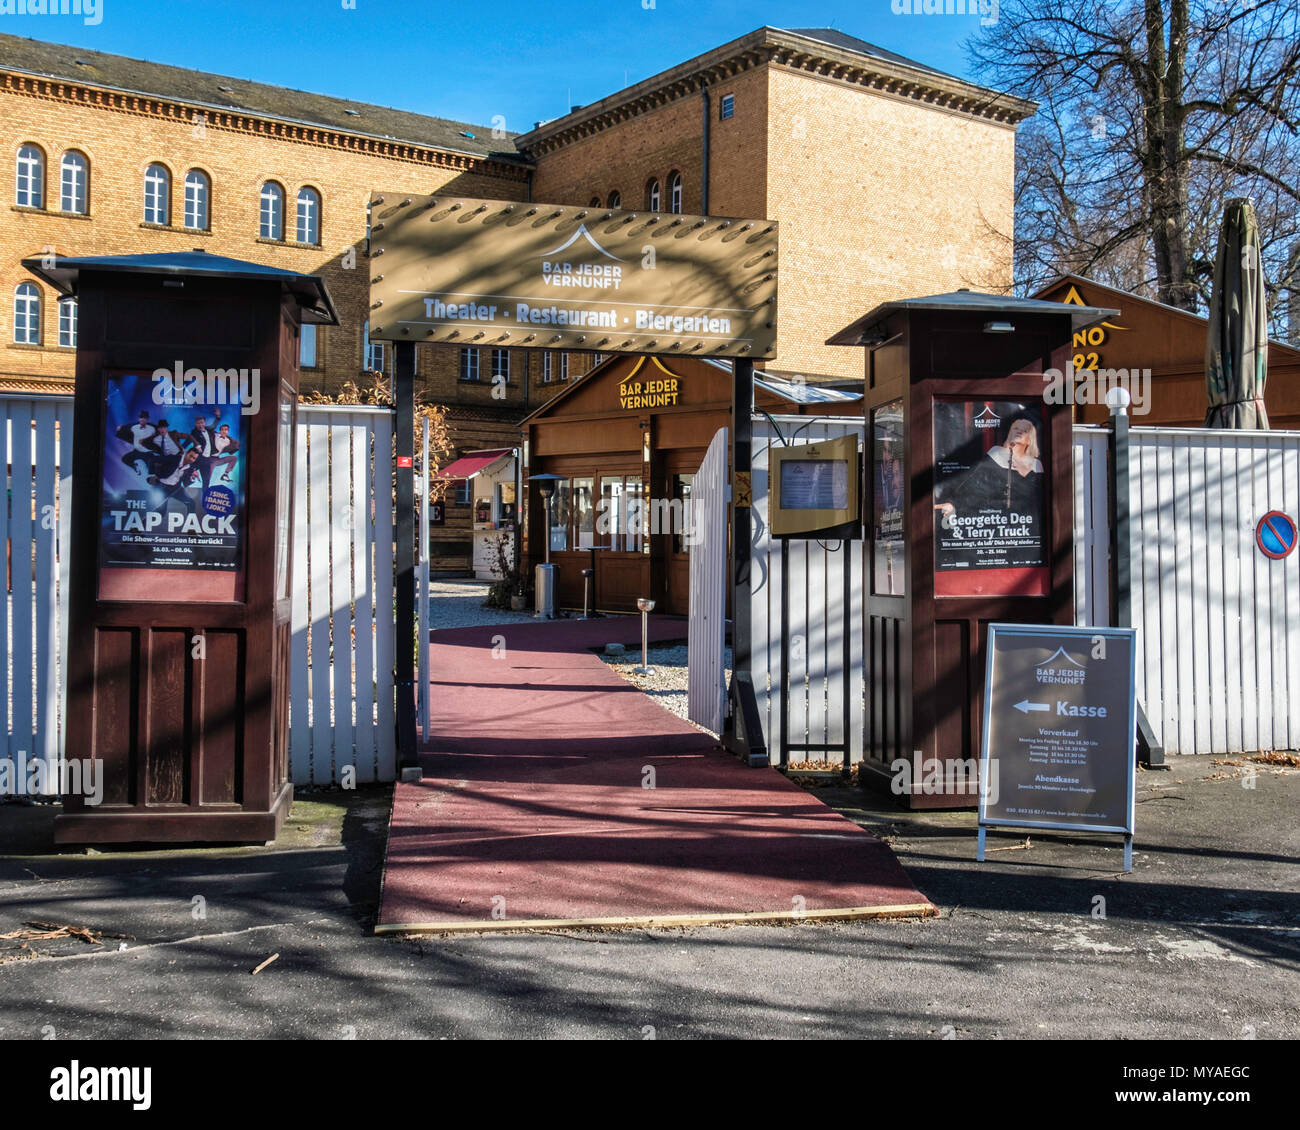 Berlin,Bar Jeder Vernunft theatre restaurant and Beer garden. Venue with mirror tented interior for old-time cabaret, comedy - Stock Image